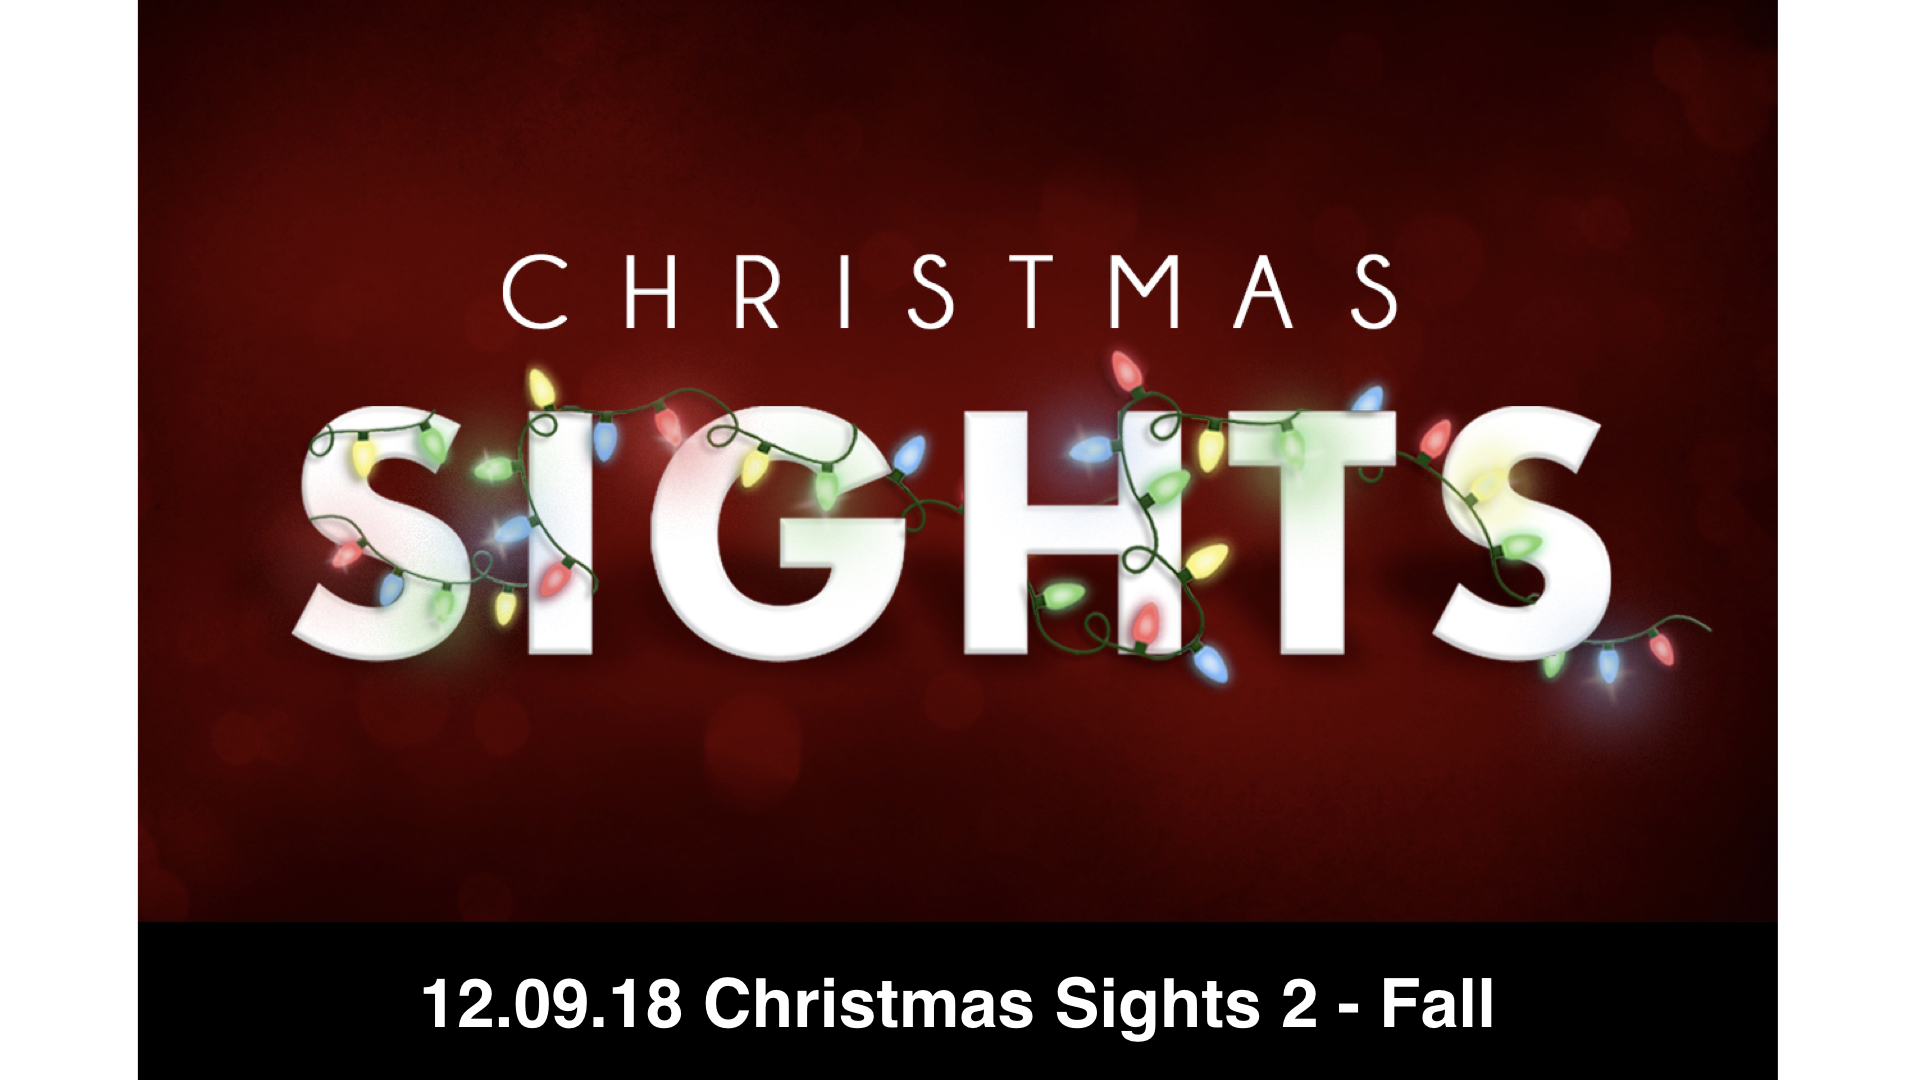 12.09.18 Christmas Sights 2 - Fall